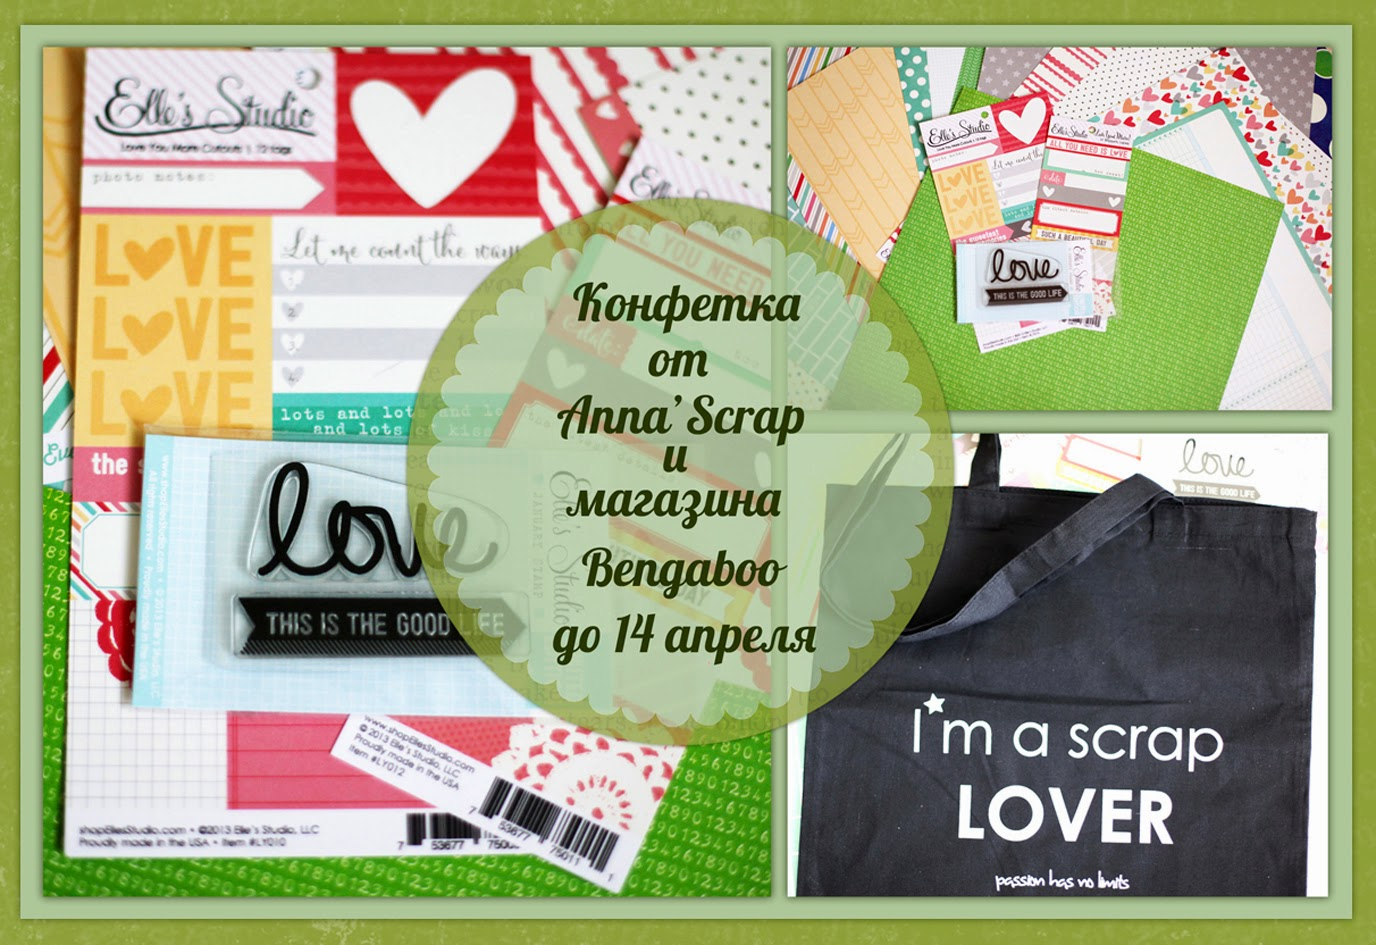 http://anna-scraps.blogspot.ru/2014/03/blog-post_20.html